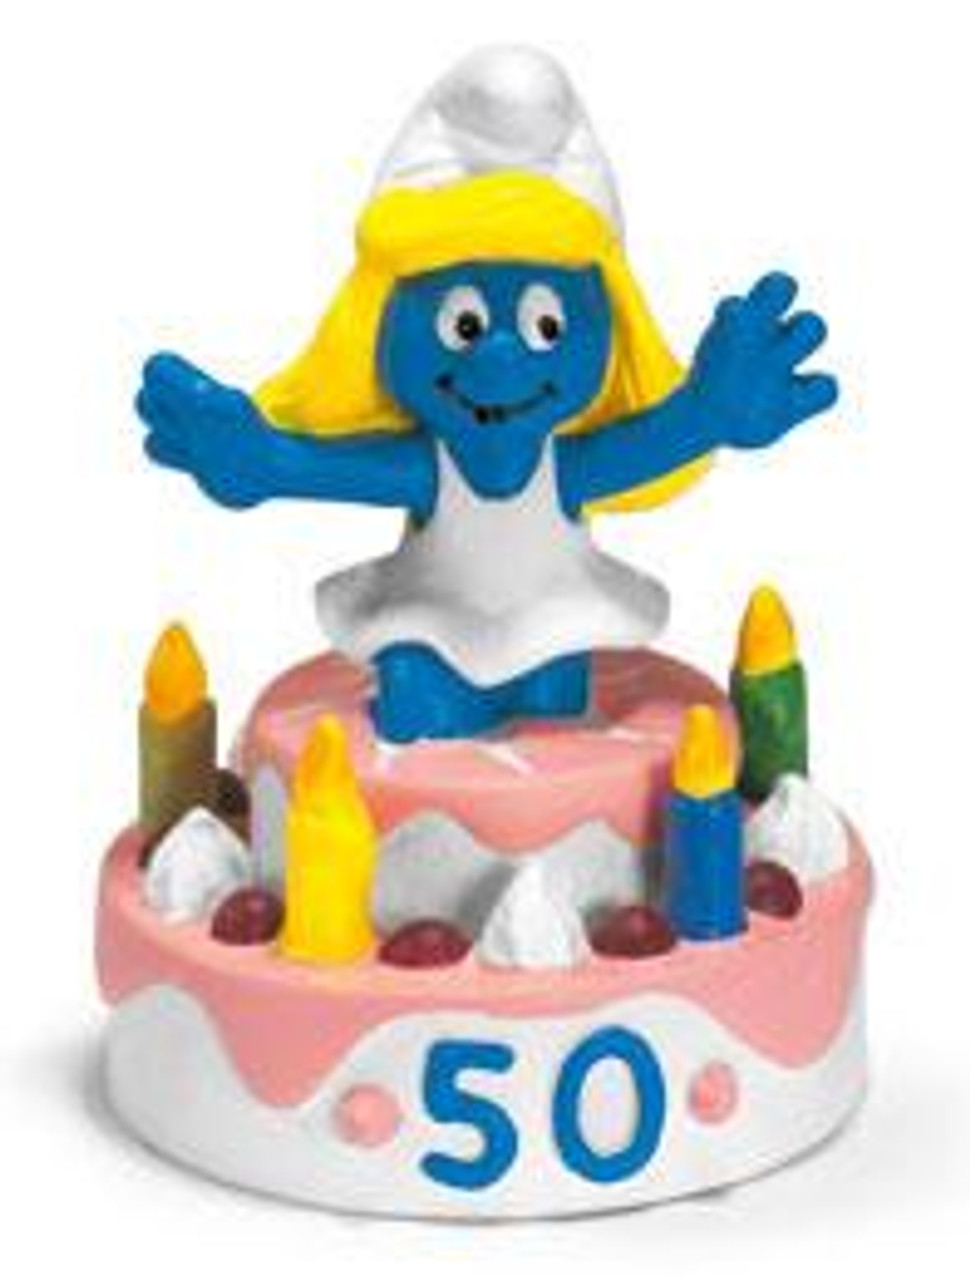 The Smurfs Smurfette Mini Figure [Surprise]